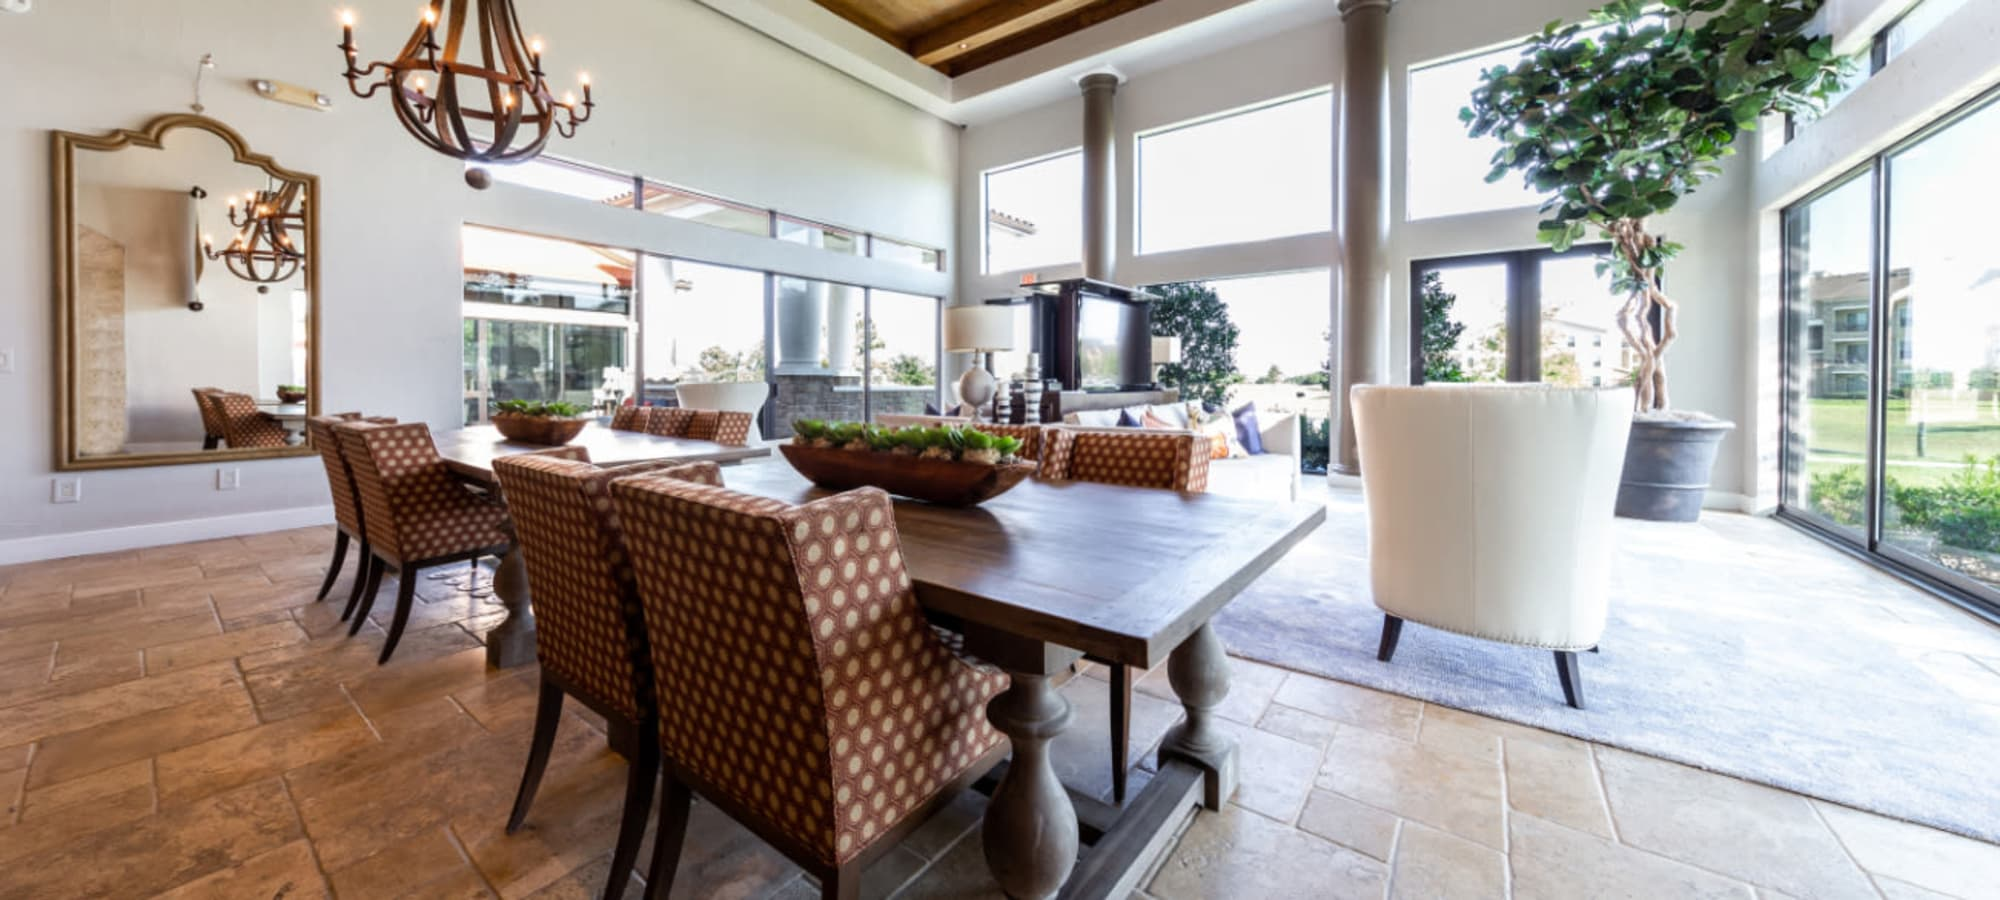 Apply to live at Marquis at the Reserve in Katy, Texas